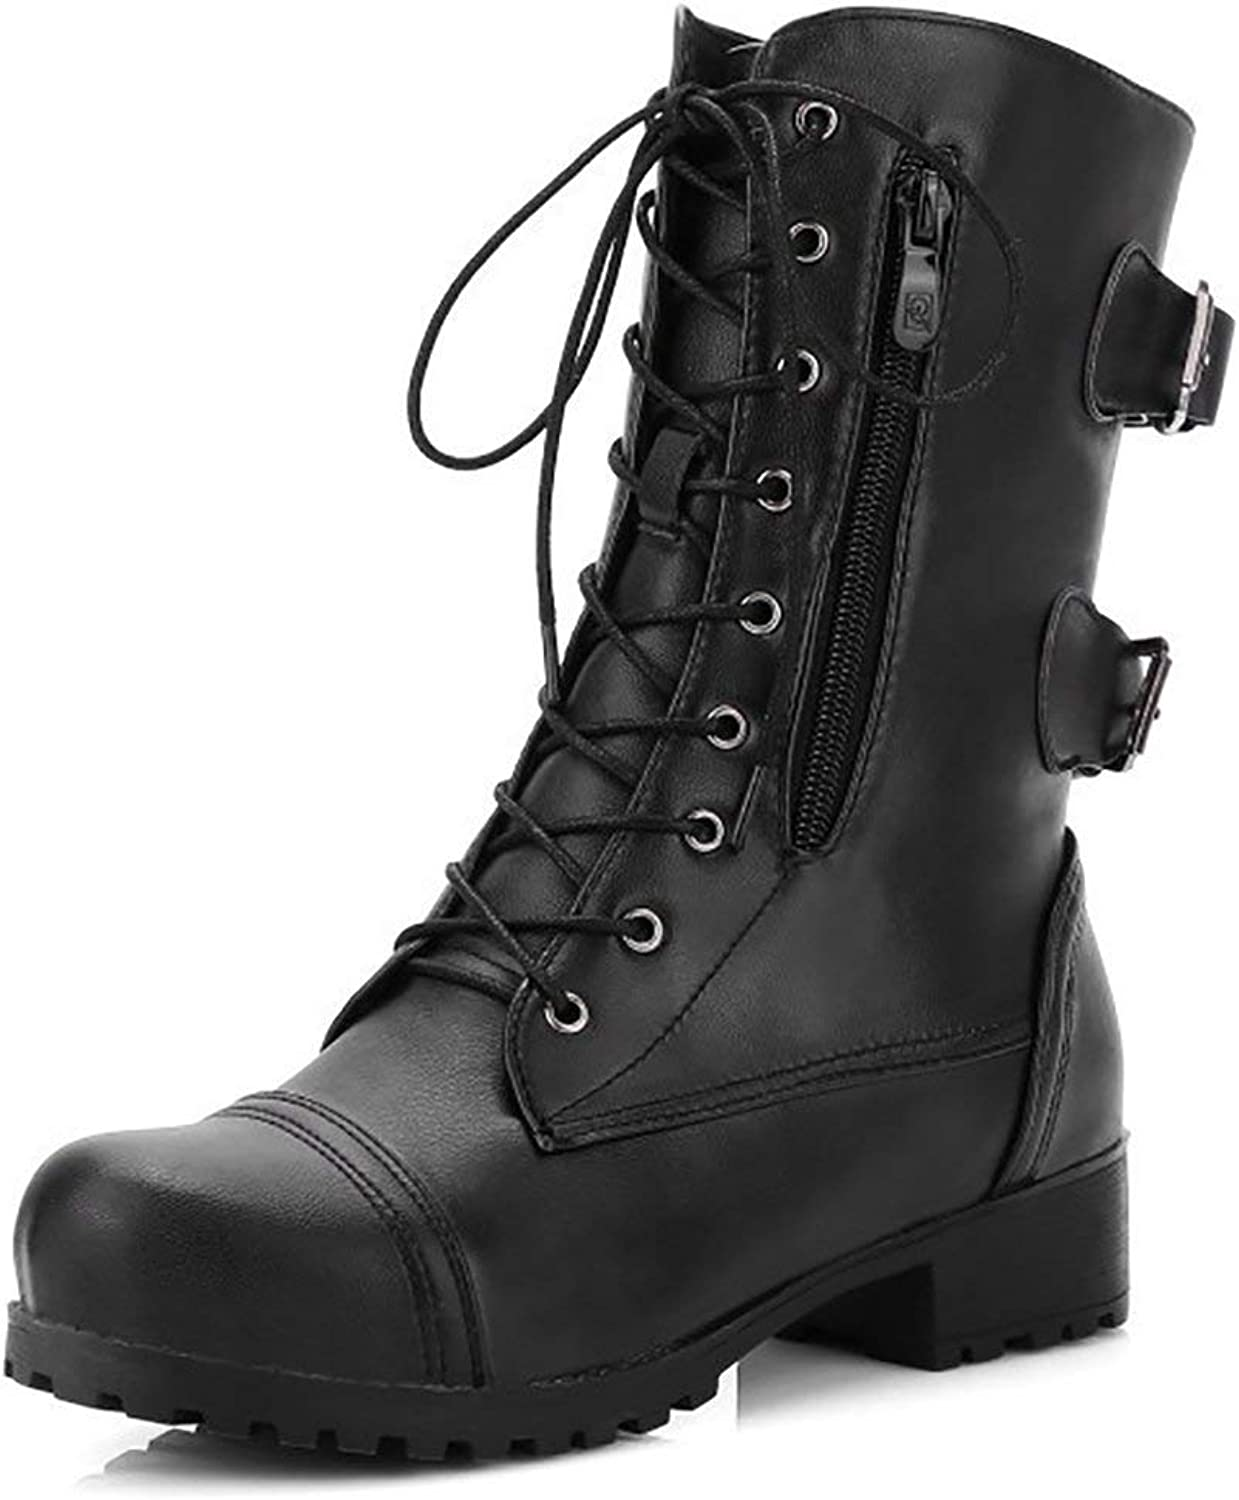 Women's Mid Calf Martin Boots Lace up Flats shoes Zipper Leather Buckle Booties Pockets